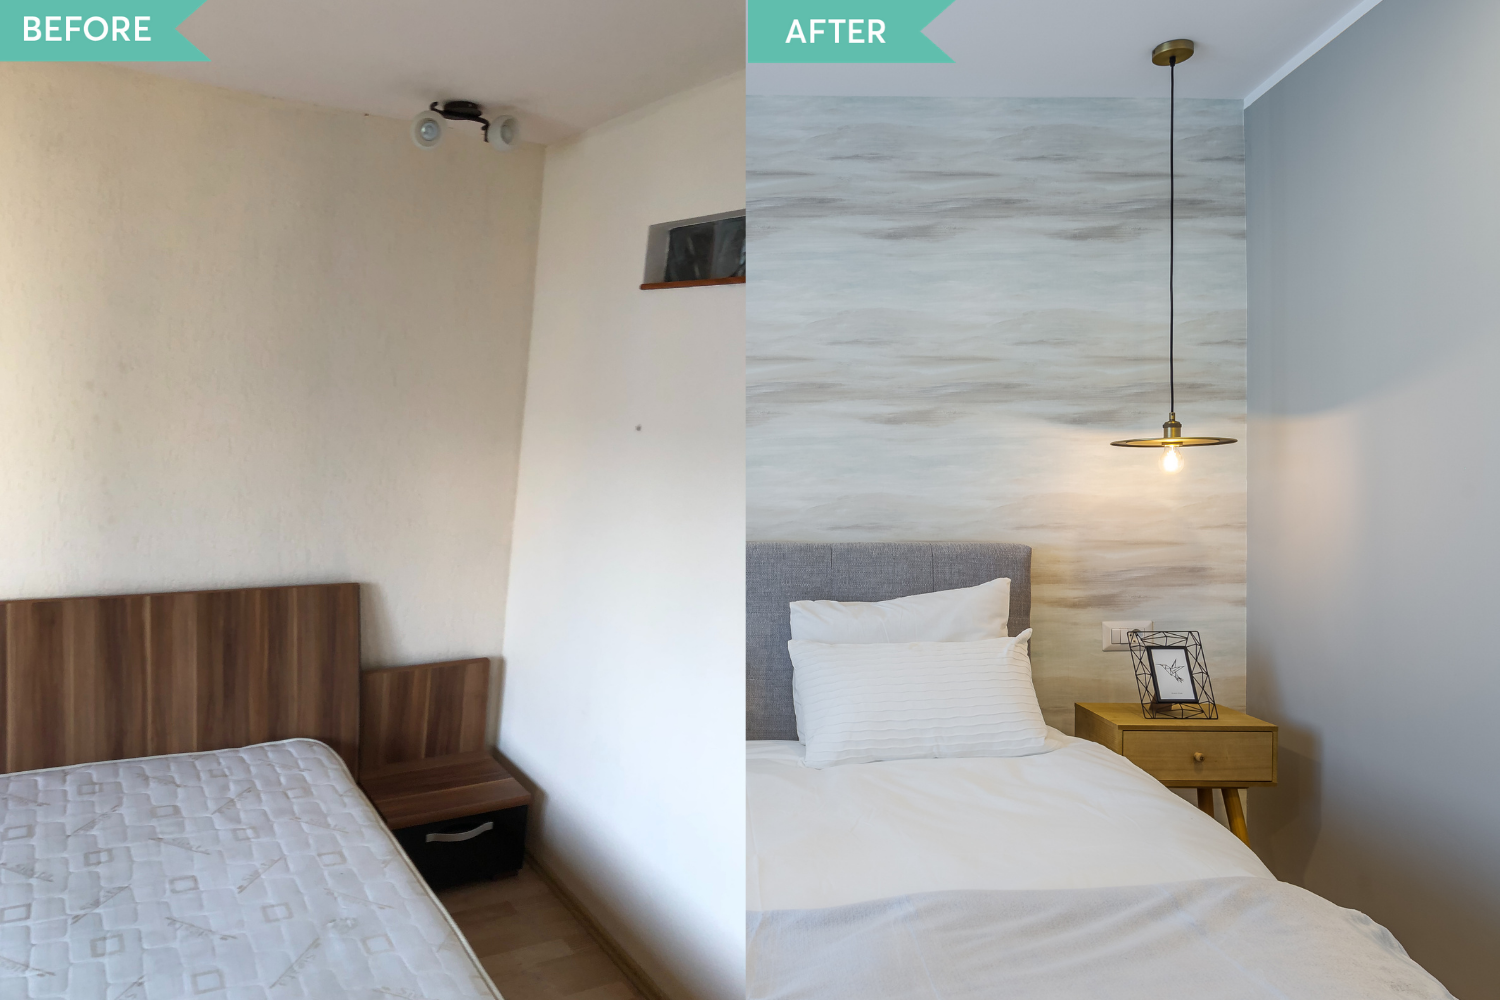 Renovare apartament Aviatiei - before and after _ Arh. Cristiana Zgripcea (10)